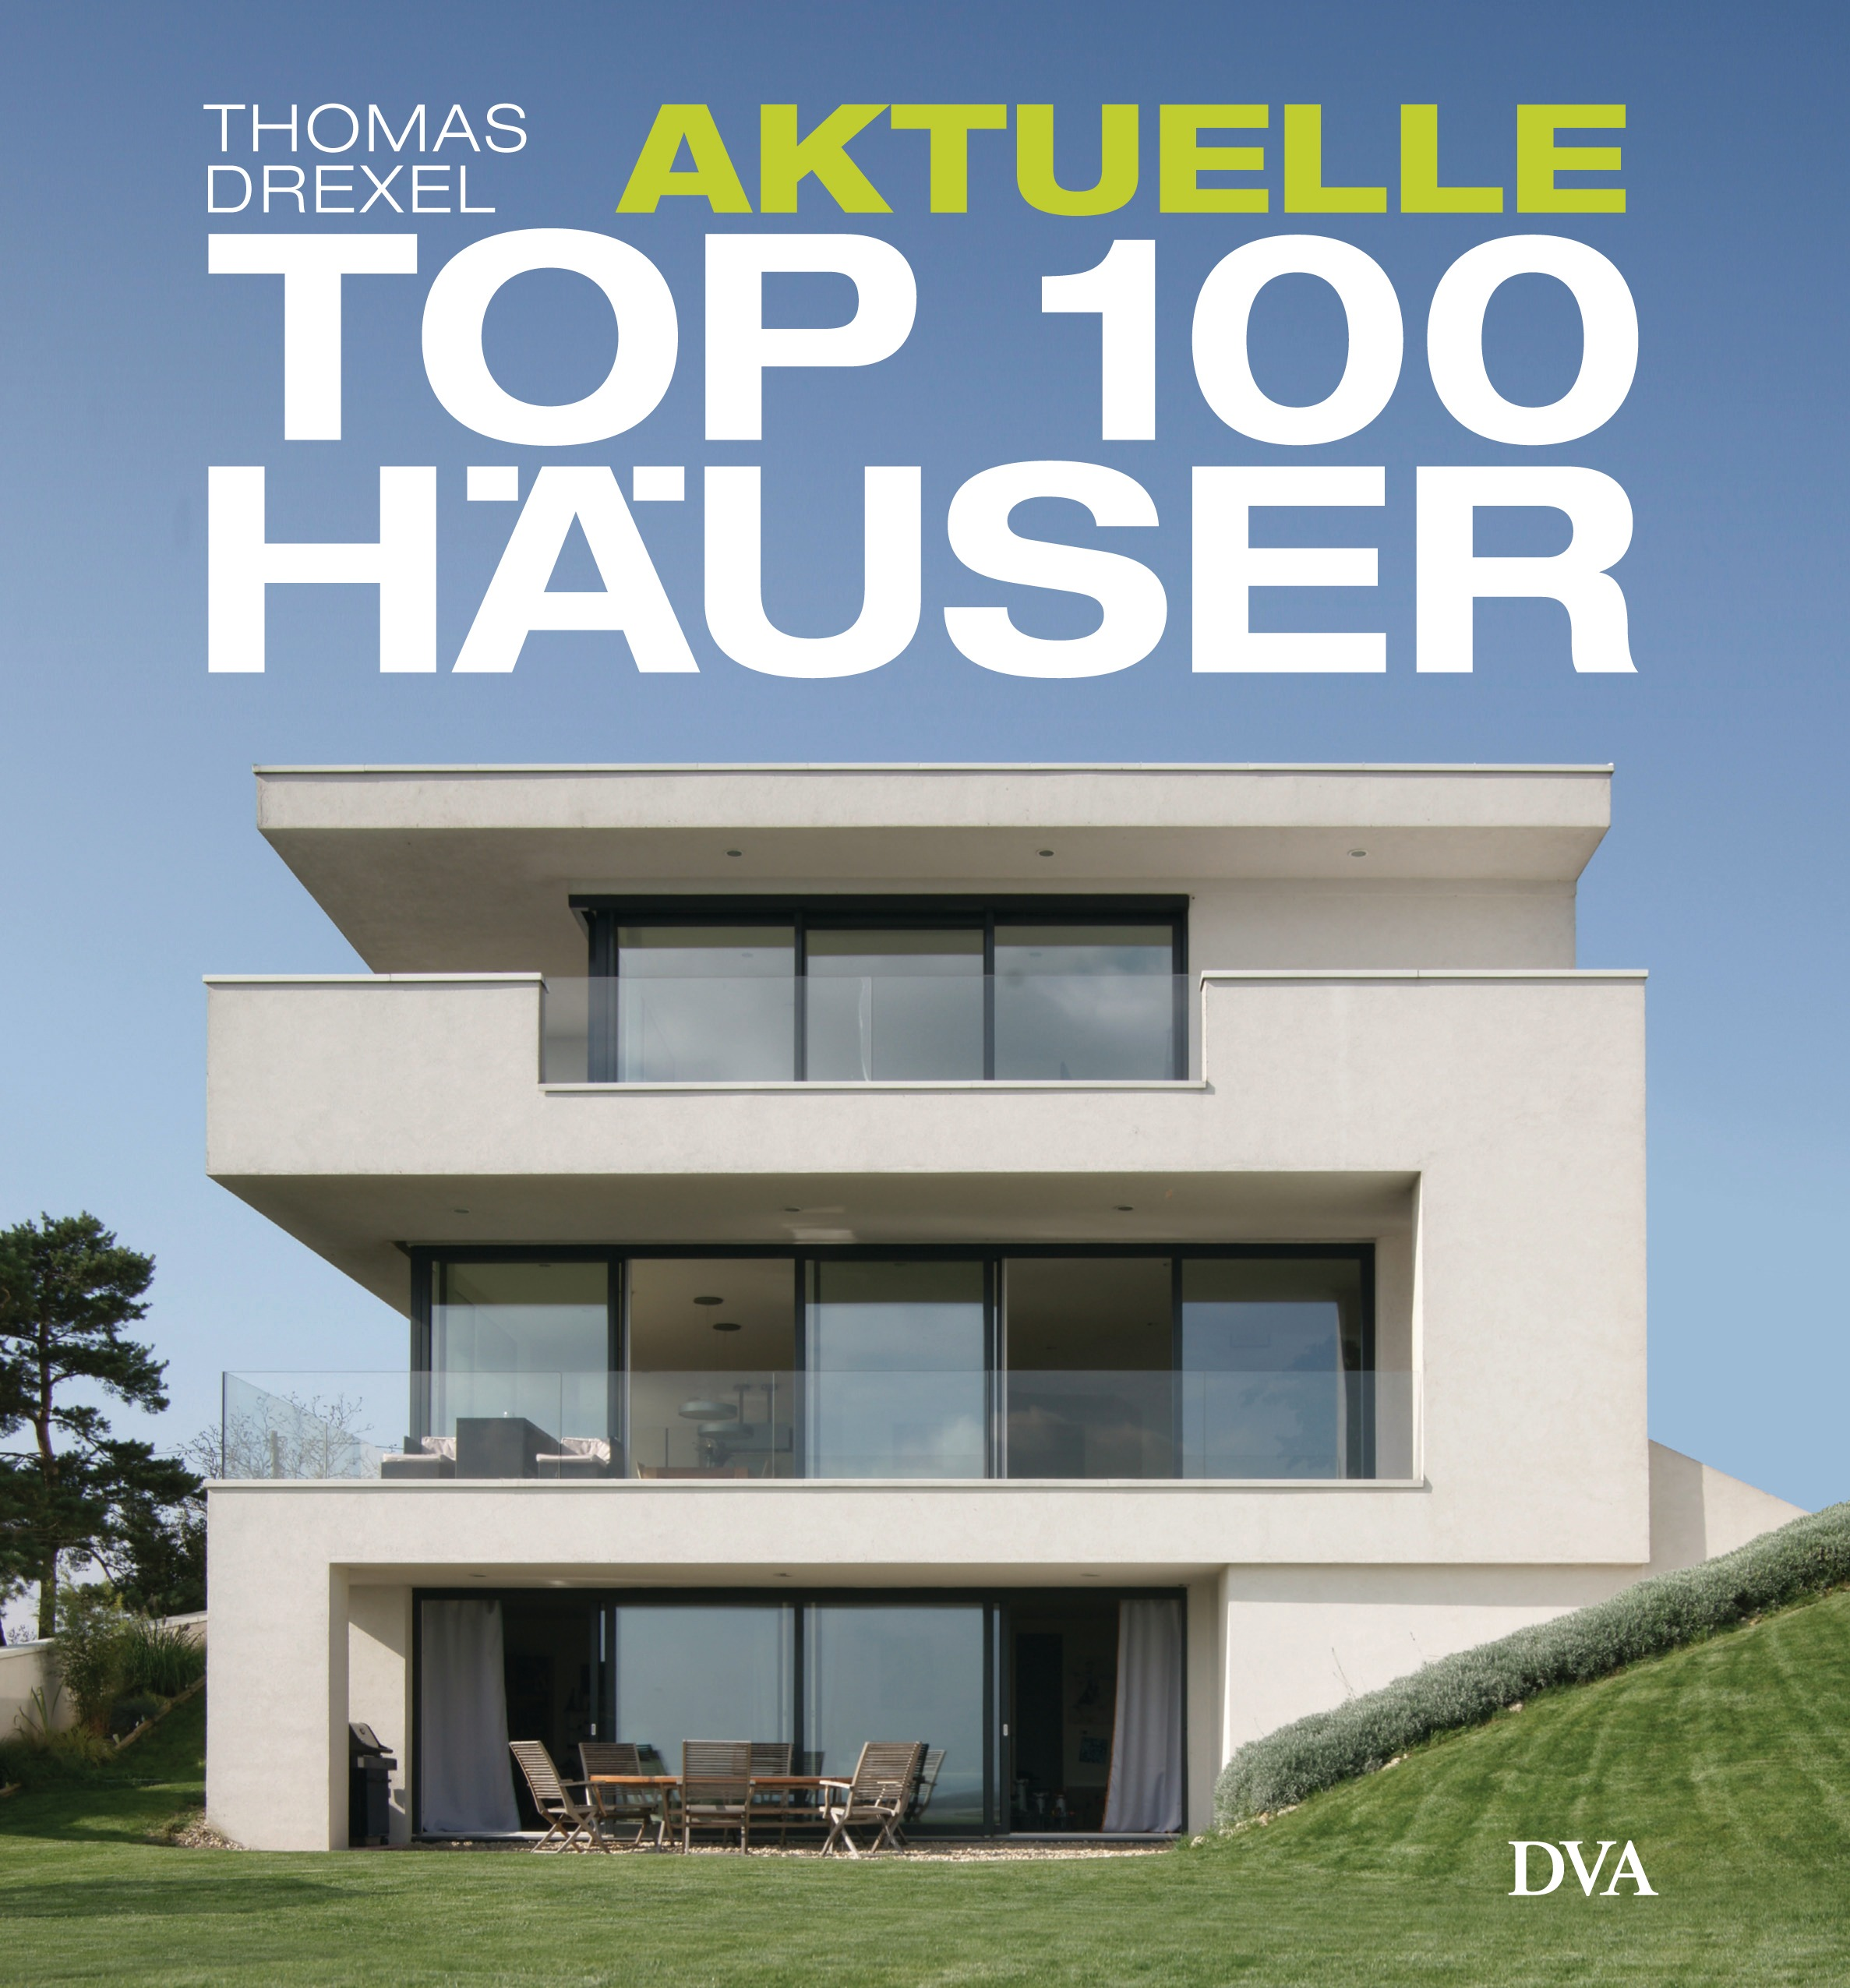 thomas drexel aktuelle top 100 h user dva verlag gebundenes buch. Black Bedroom Furniture Sets. Home Design Ideas